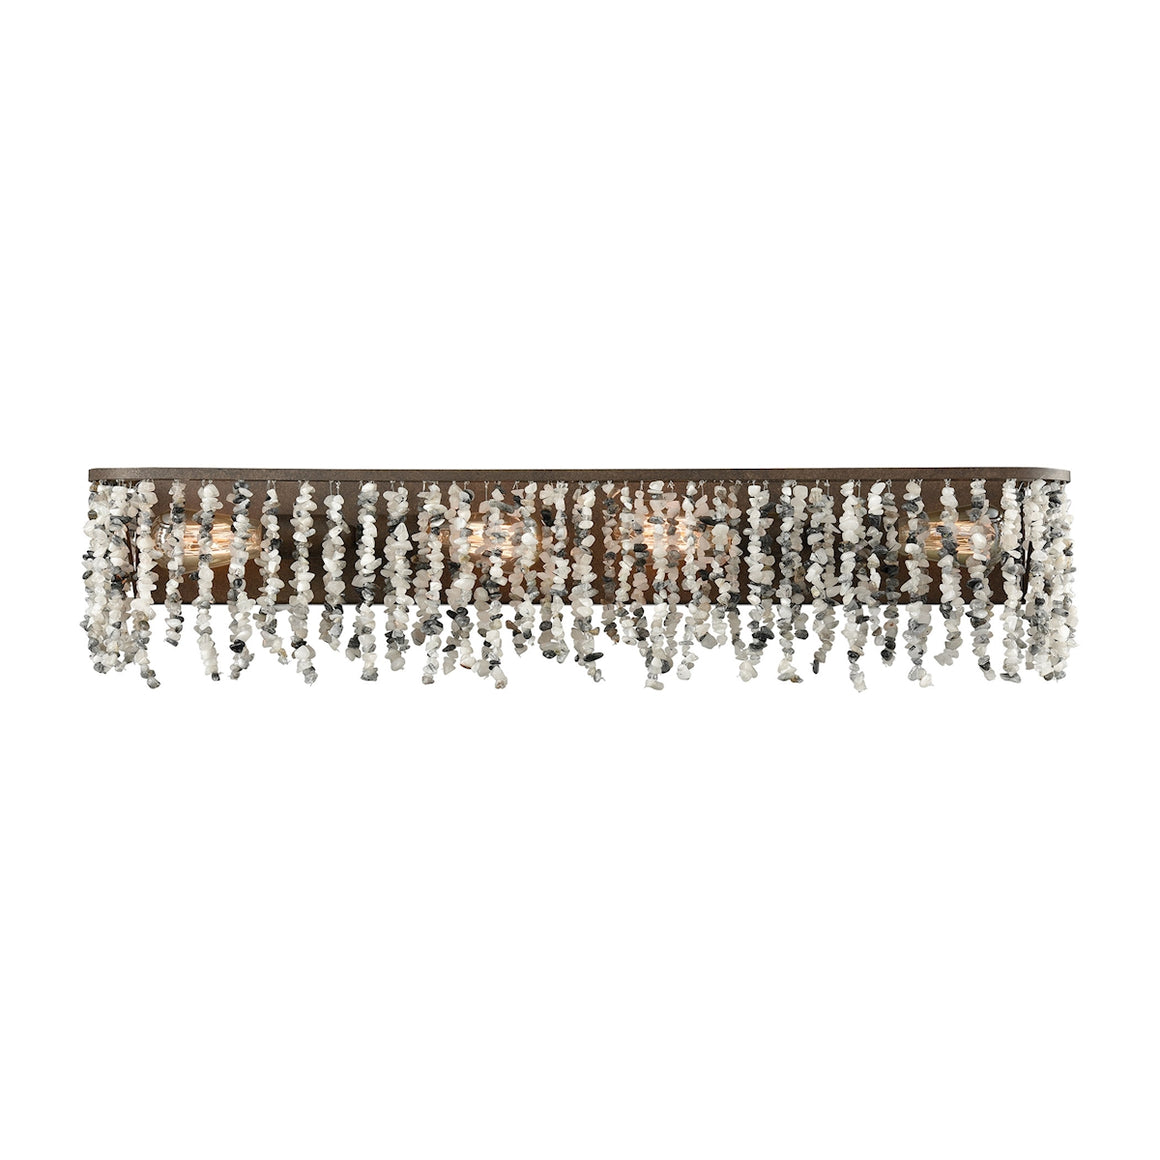 Agate Stones 4 Light Vanity In Weathered Bronze With Gray Agate Stones 65303/4 by Elk Lighting